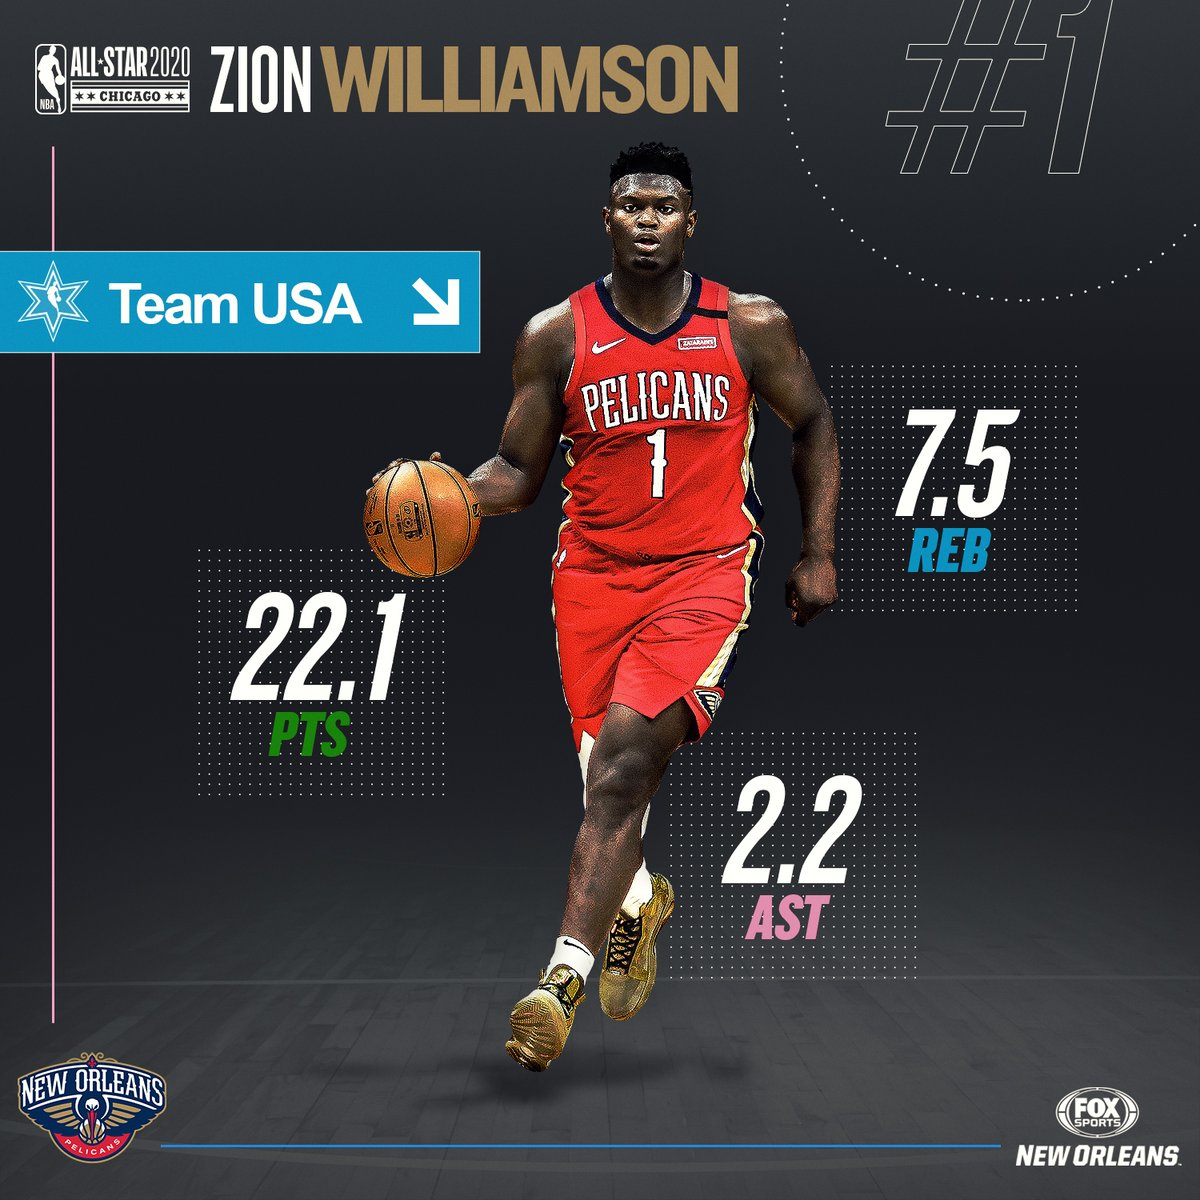 Will @ZionWilliamson and Team USA win bragging rights in tonight's #NBARisingStars Challenge? We'll find out soon enough. #NBAAllStar #WontBowDown @PelicansNBA